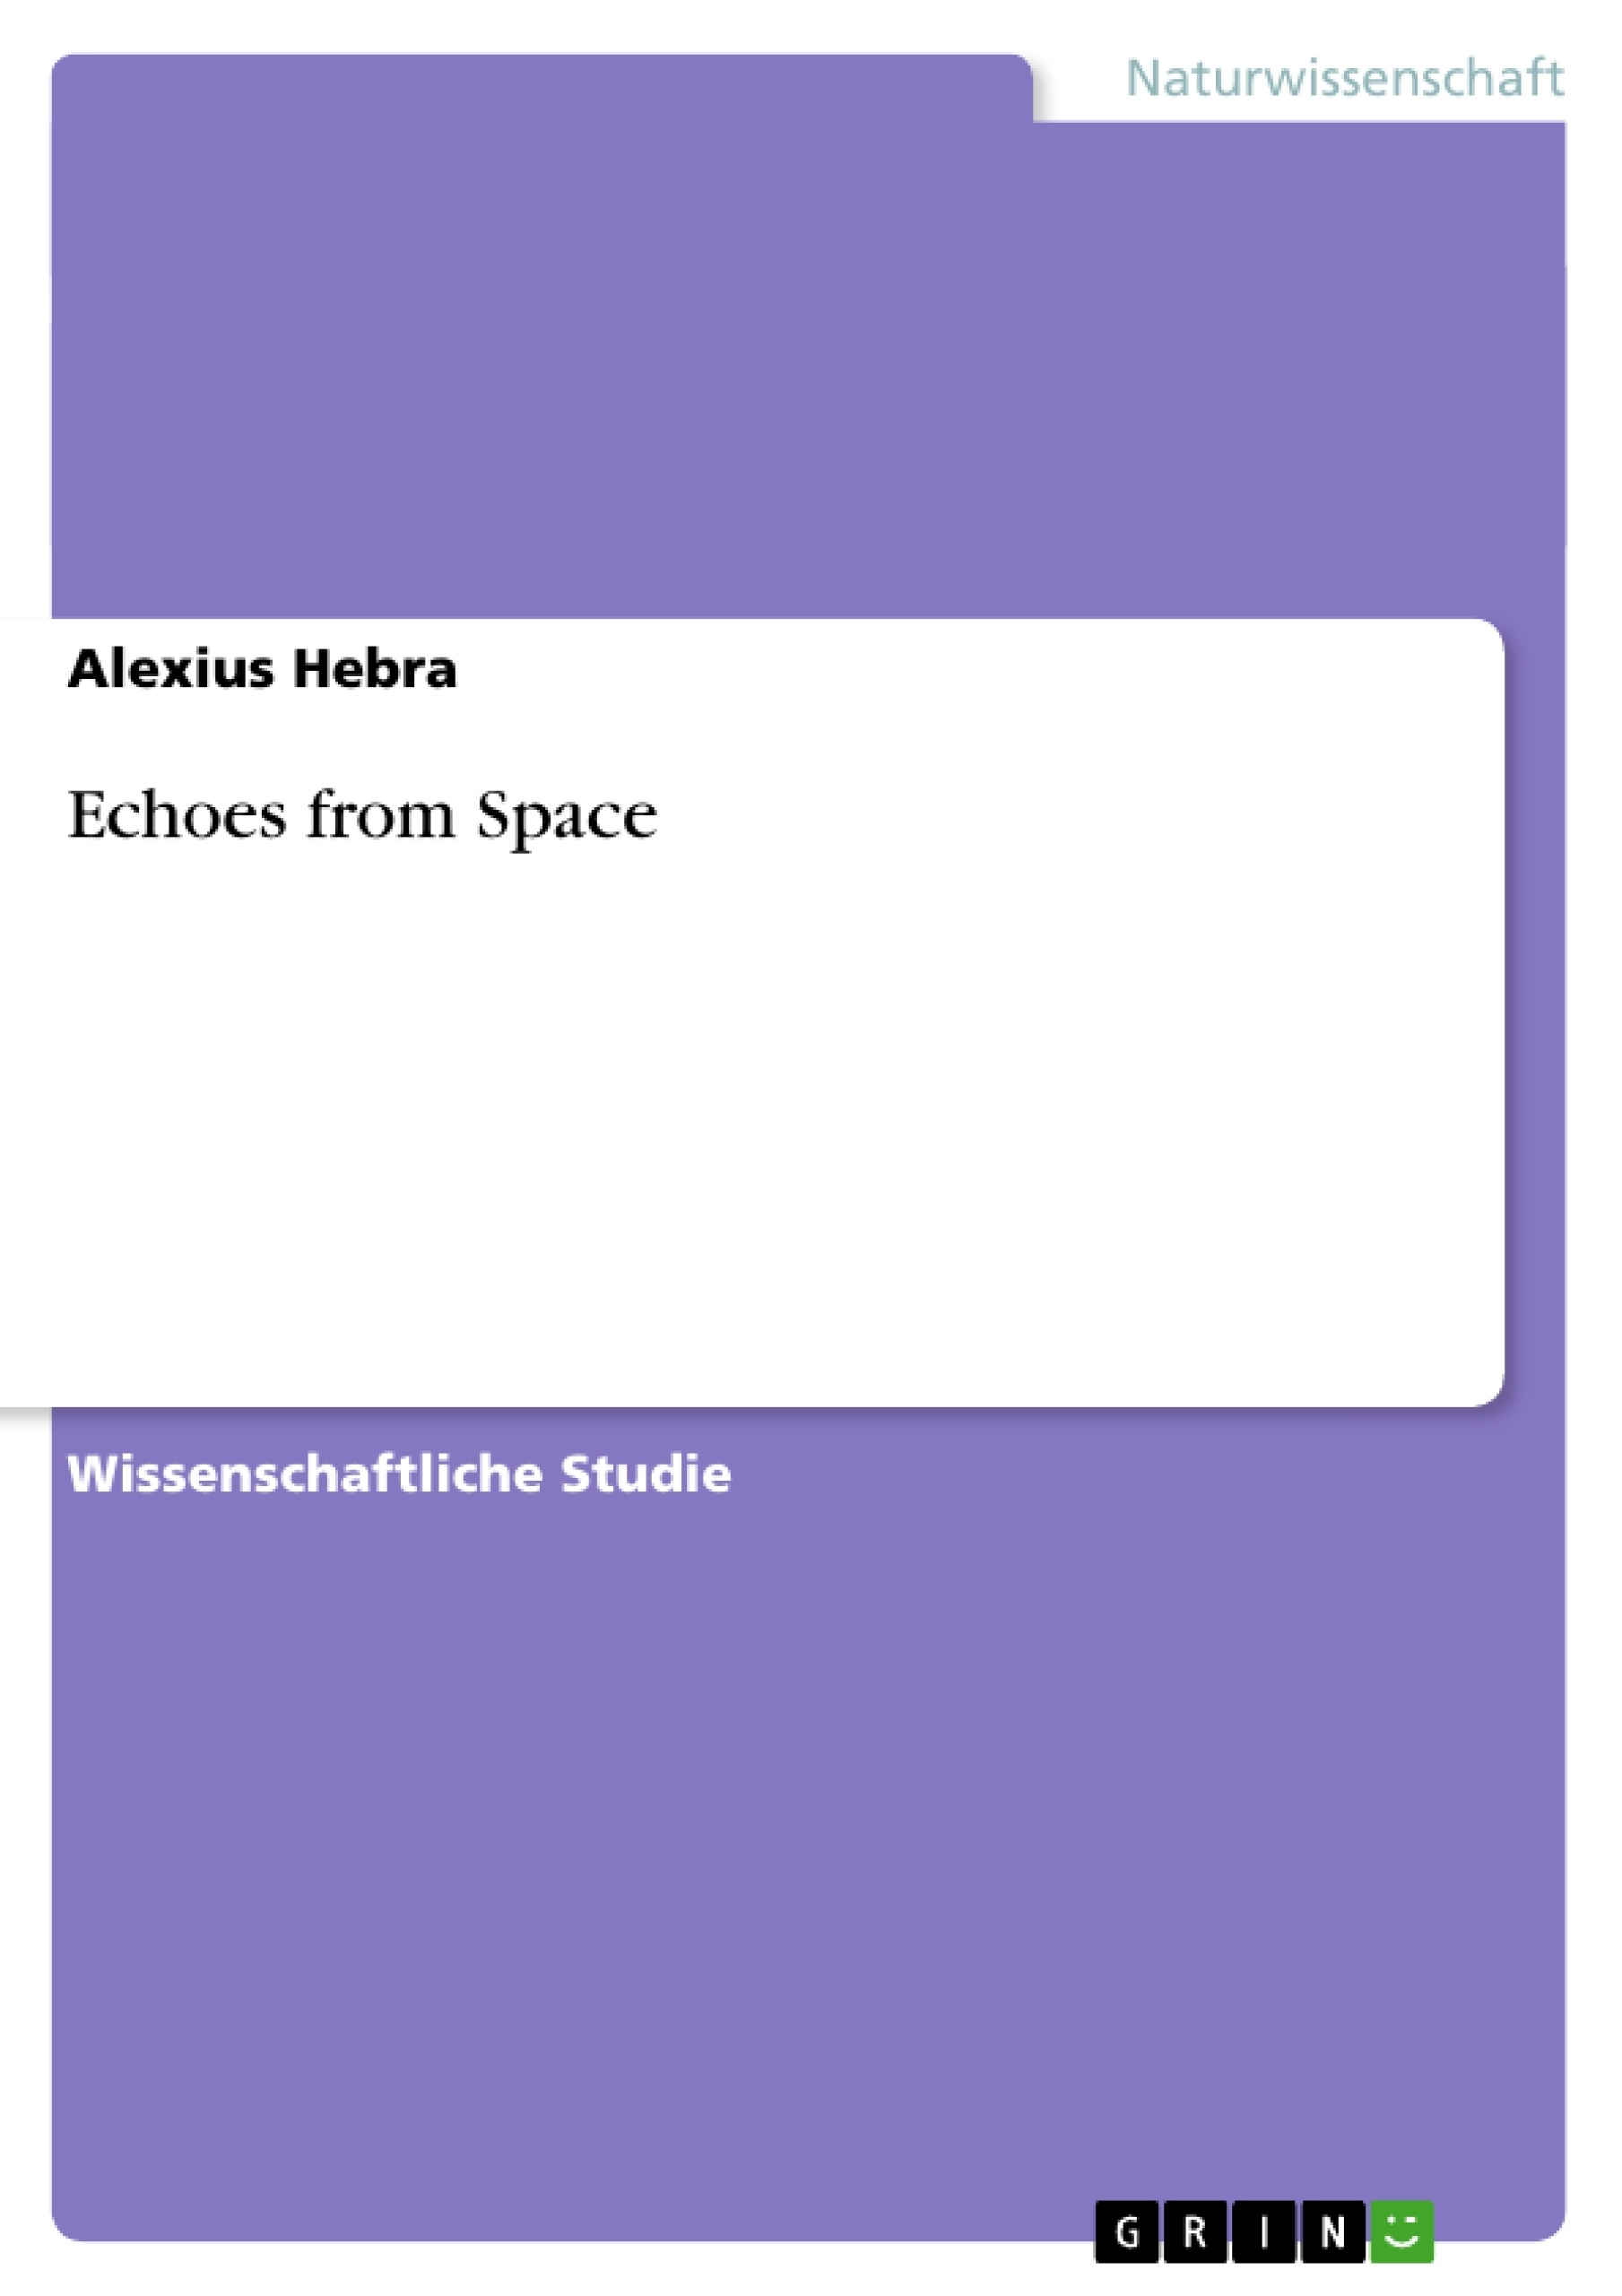 Titel: Echoes from Space